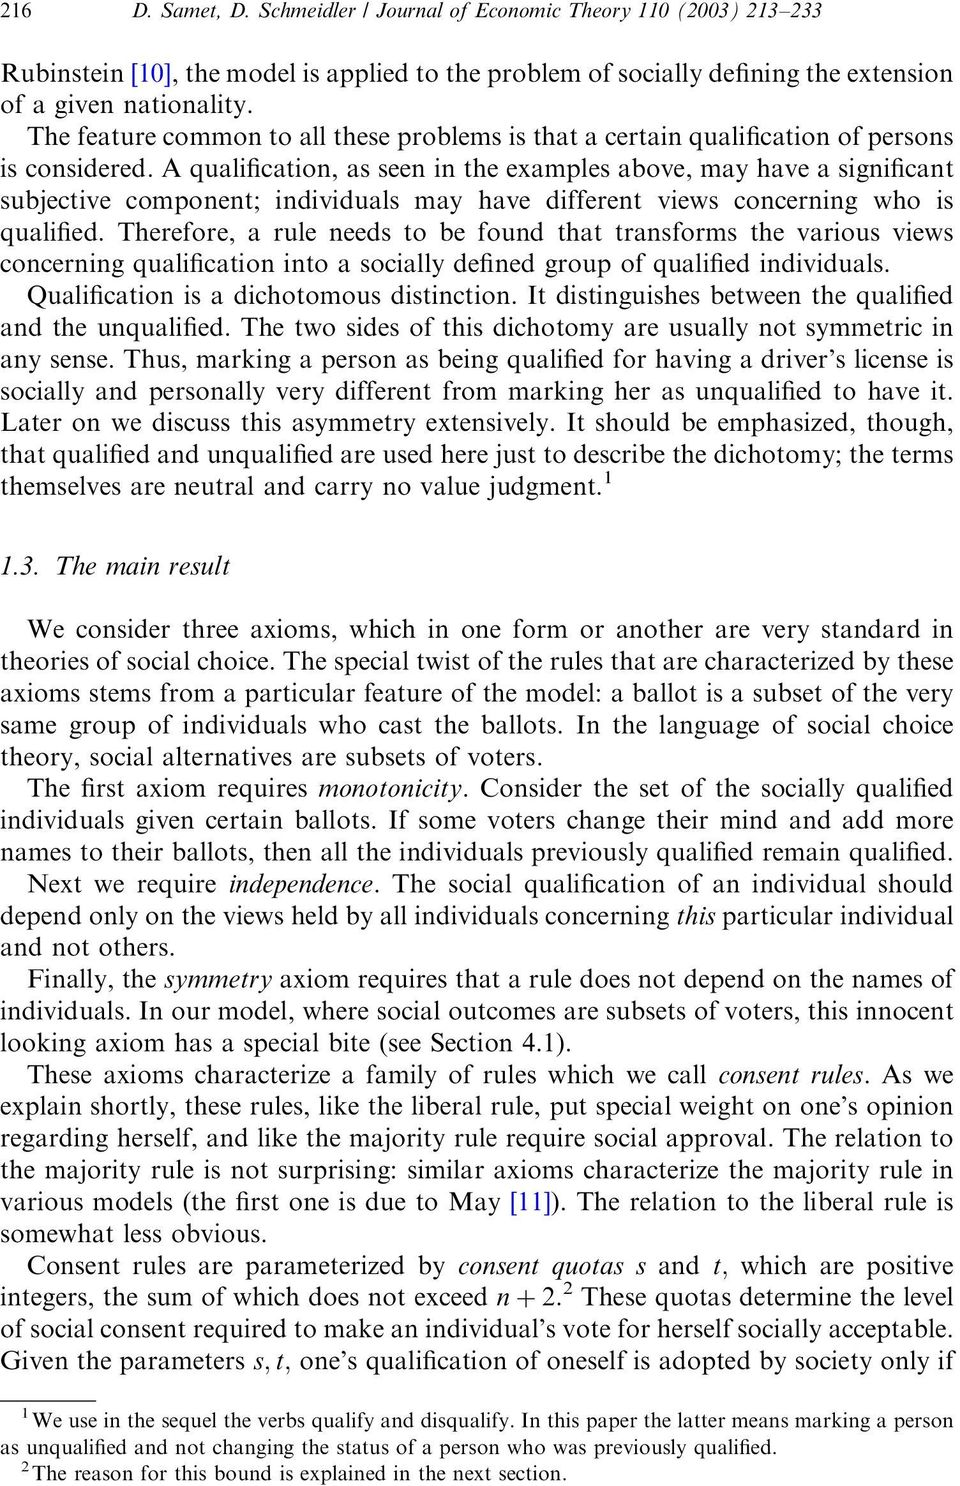 A qualification, as seen in the examples above, may have a significant subjective component; individuals may have different views concerning who is qualified.